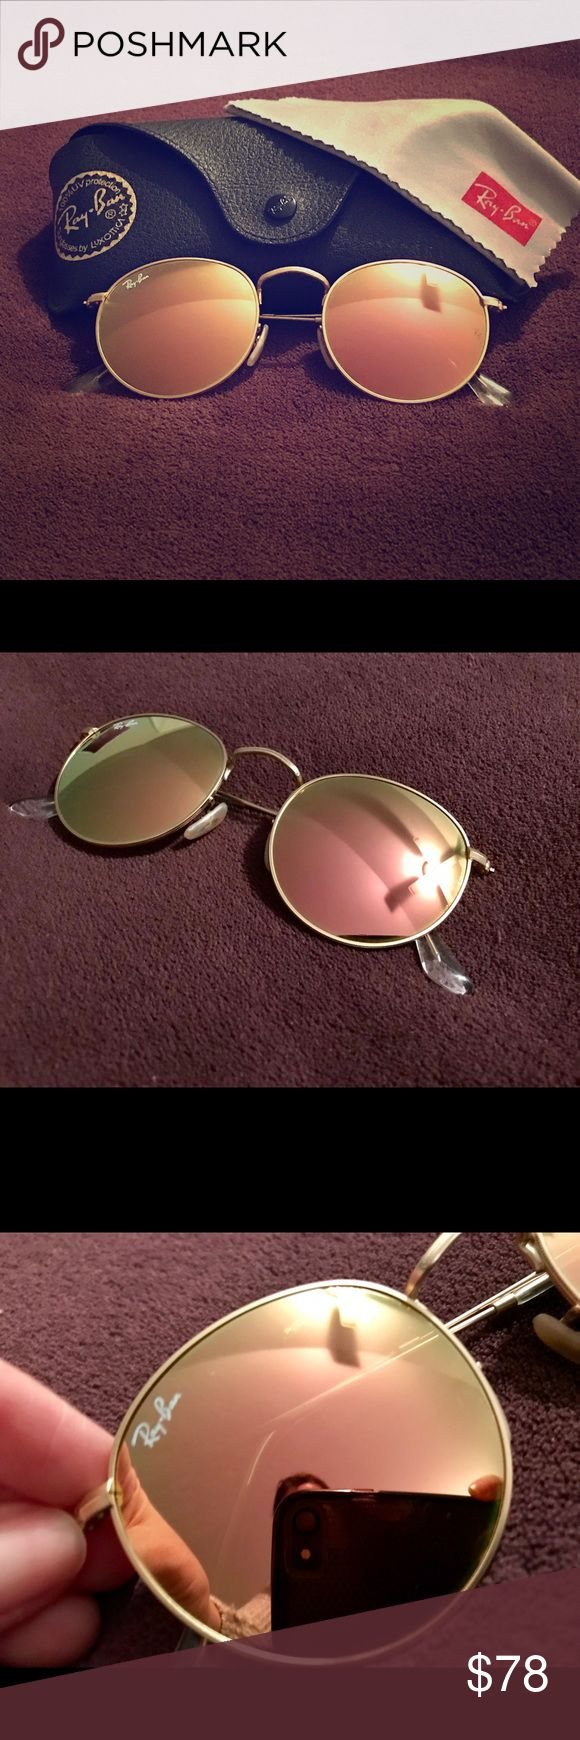 Ray-Ban Sunglasses Round Rose Gold Lenses Round Ray-Ban Sunglasses with Rose-gold lenses in mint condition! No scratches and comes with case and wipe cloth. RB 3447 Round Metal 50 Ray-Ban Accessories Sunglasses